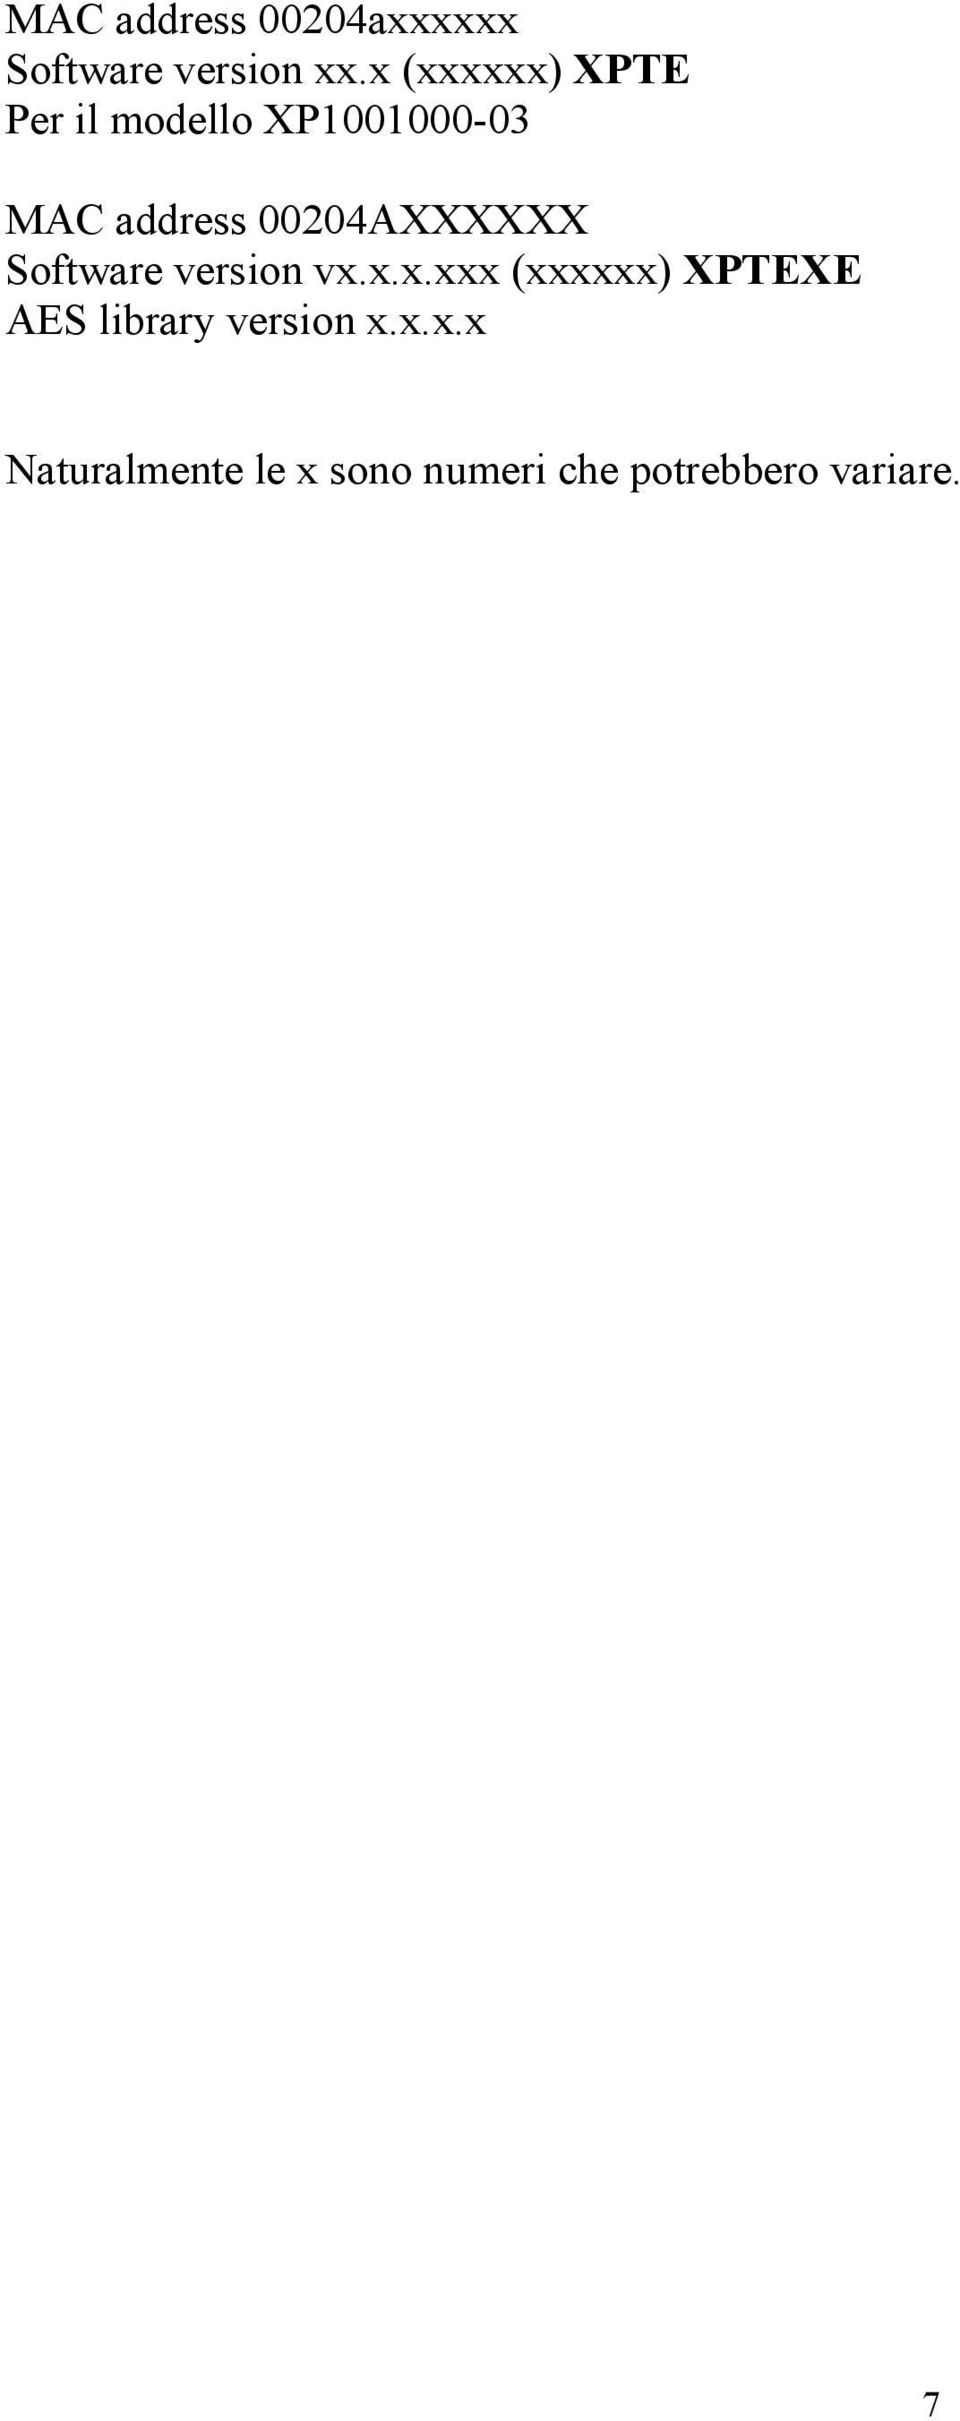 00204AXXXXXX Software version vx.